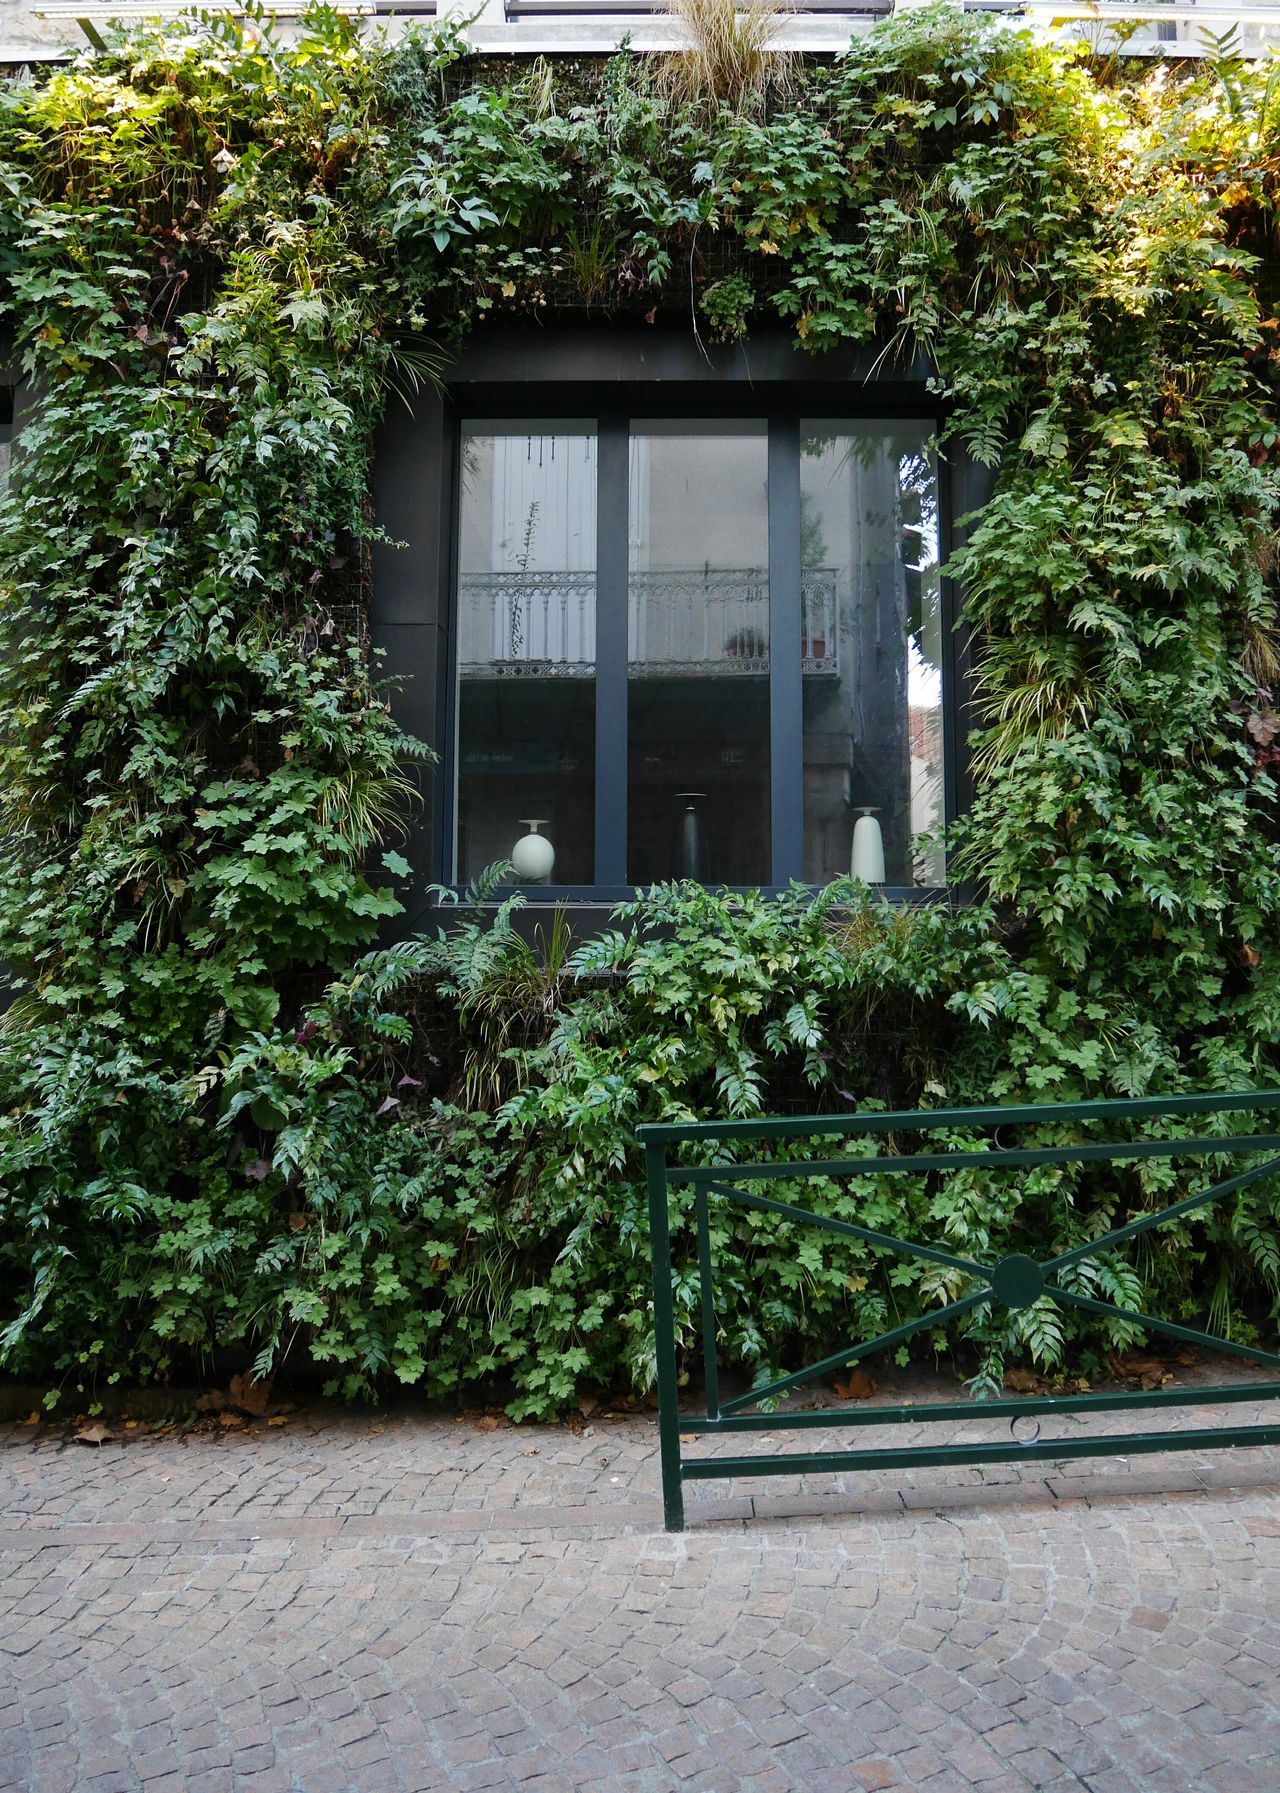 Green Wall Villefranche De Rouergue Green Color Window Building Exterior Plant Growth No People Built Structure Architecture Outdoors Architecture_collection Architecturelovers Cityscape Cityscapes Aveyron Plants Streetphotography Architecture Facadelovers Travel Destinations Architectural Feature Vegetal Architectural Detail Nature